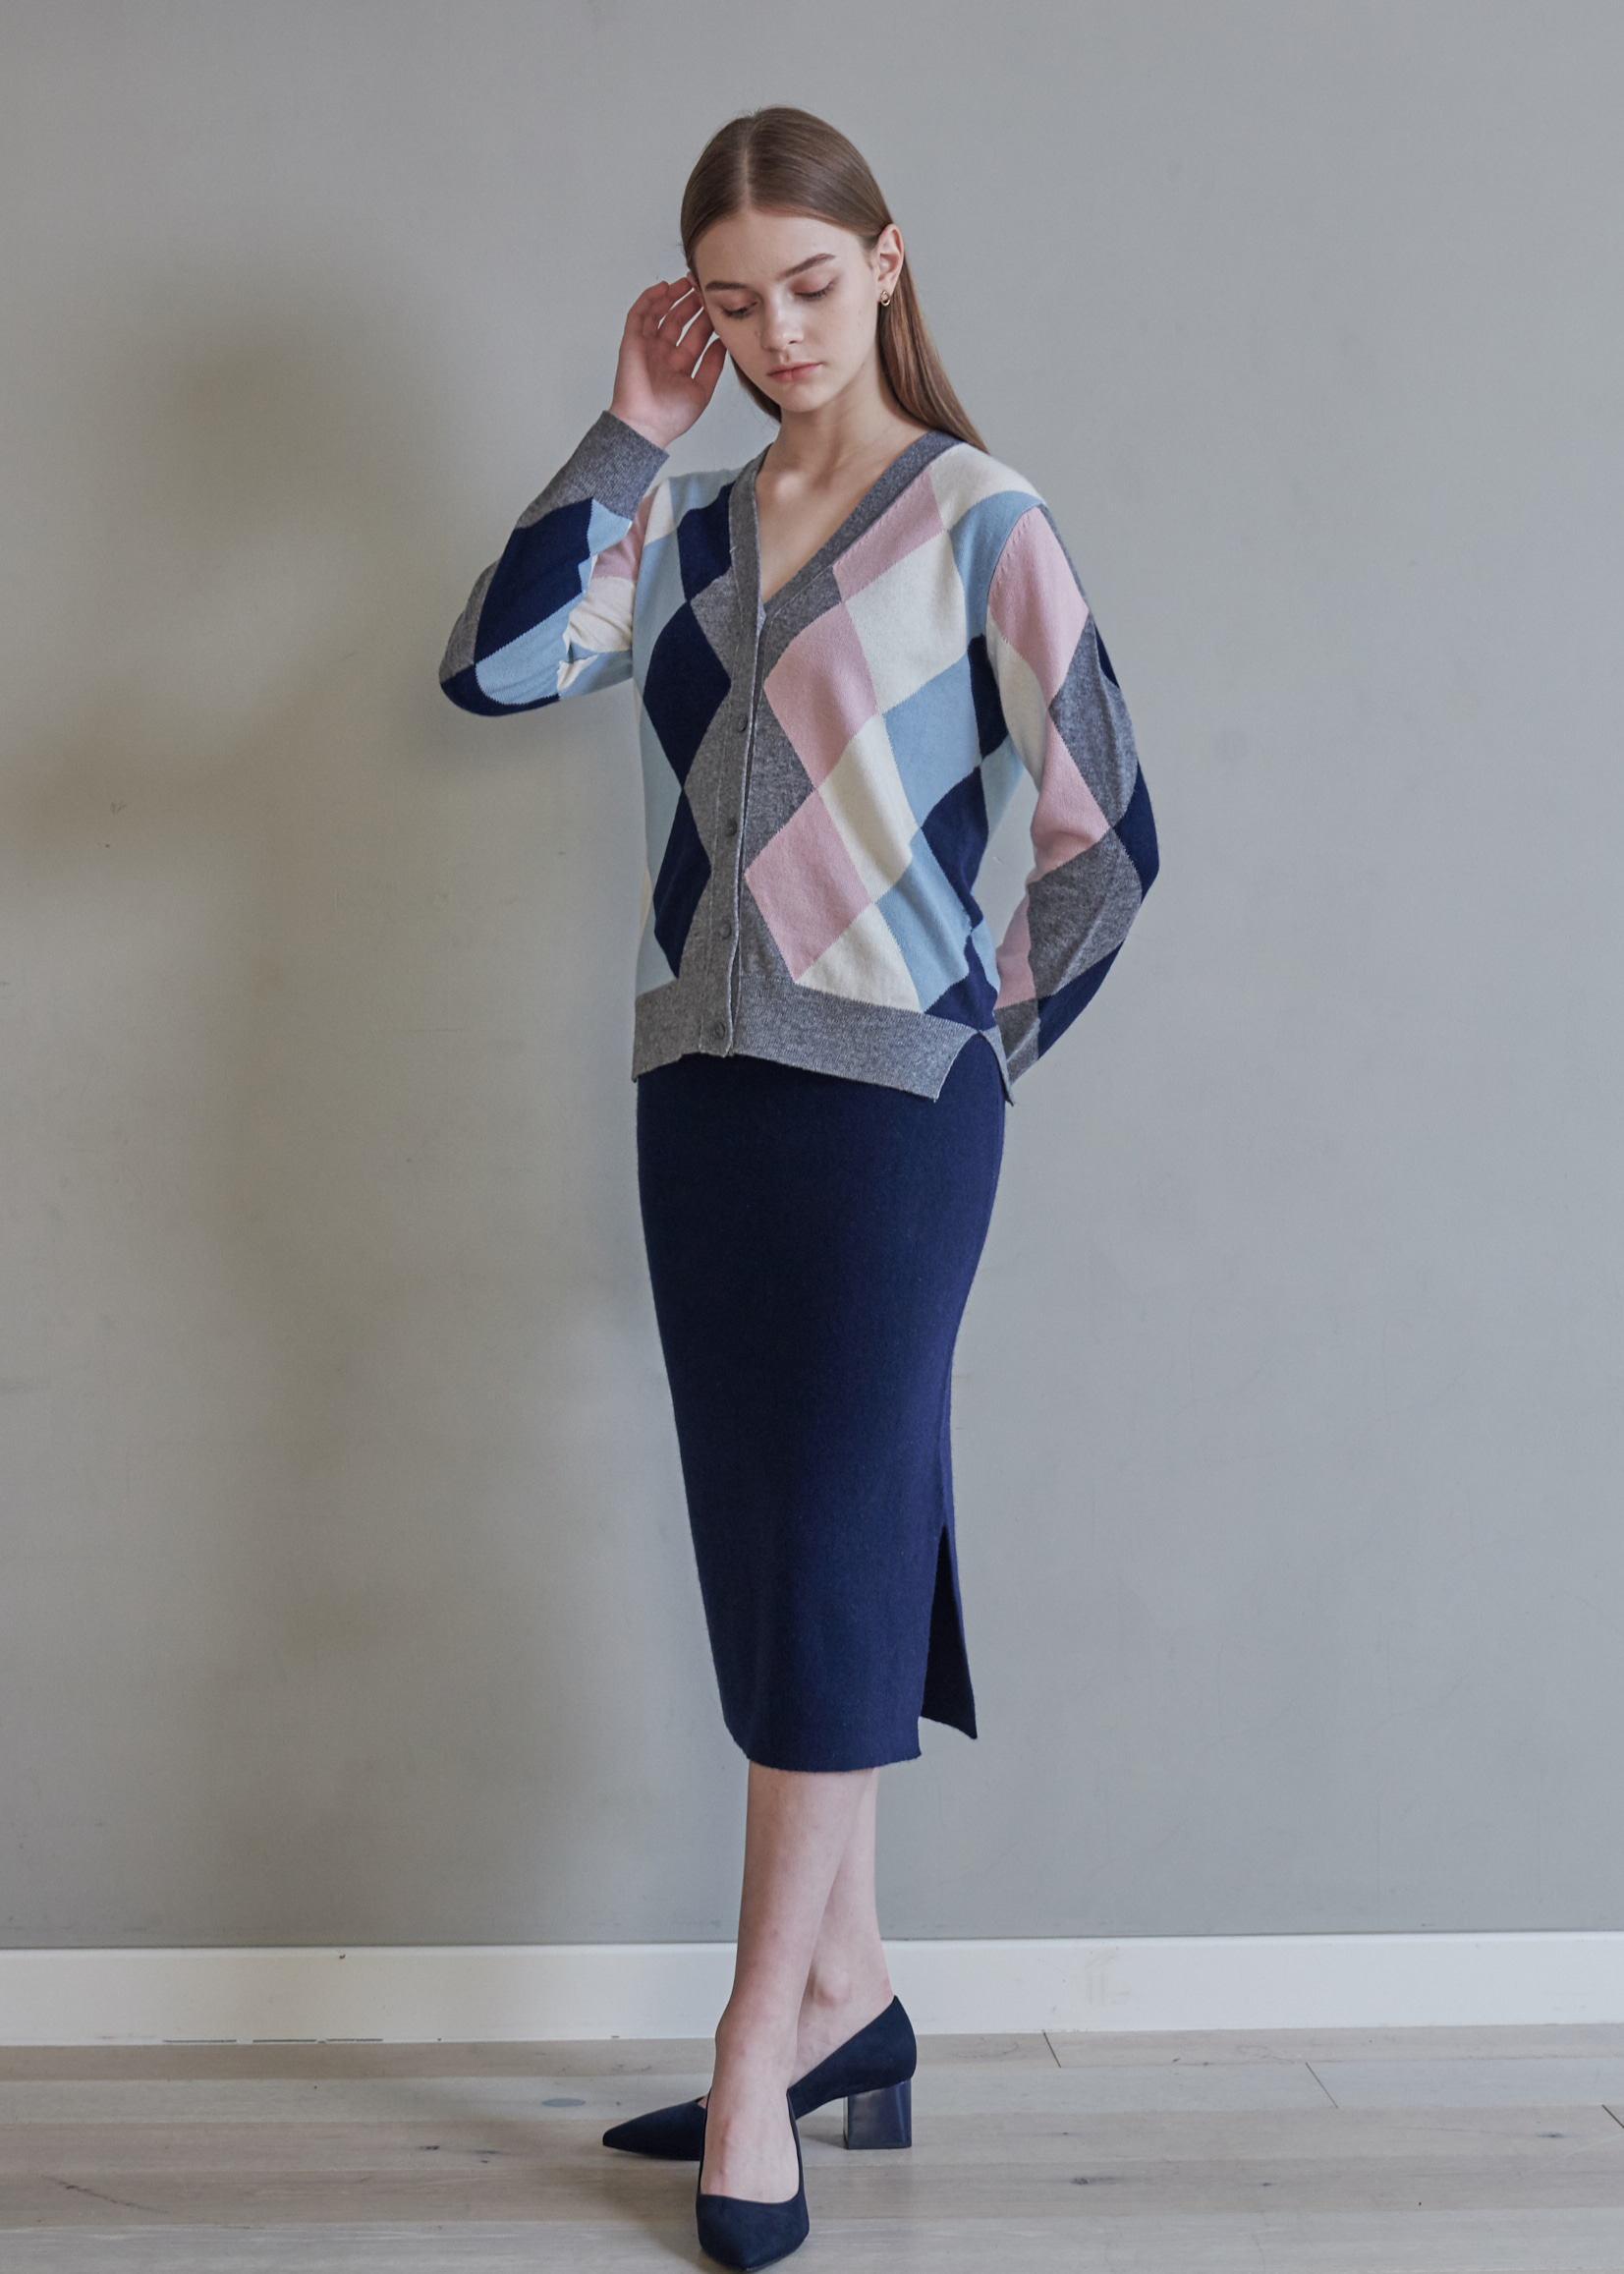 Afternoon Glow Skirt_30% Cashmere